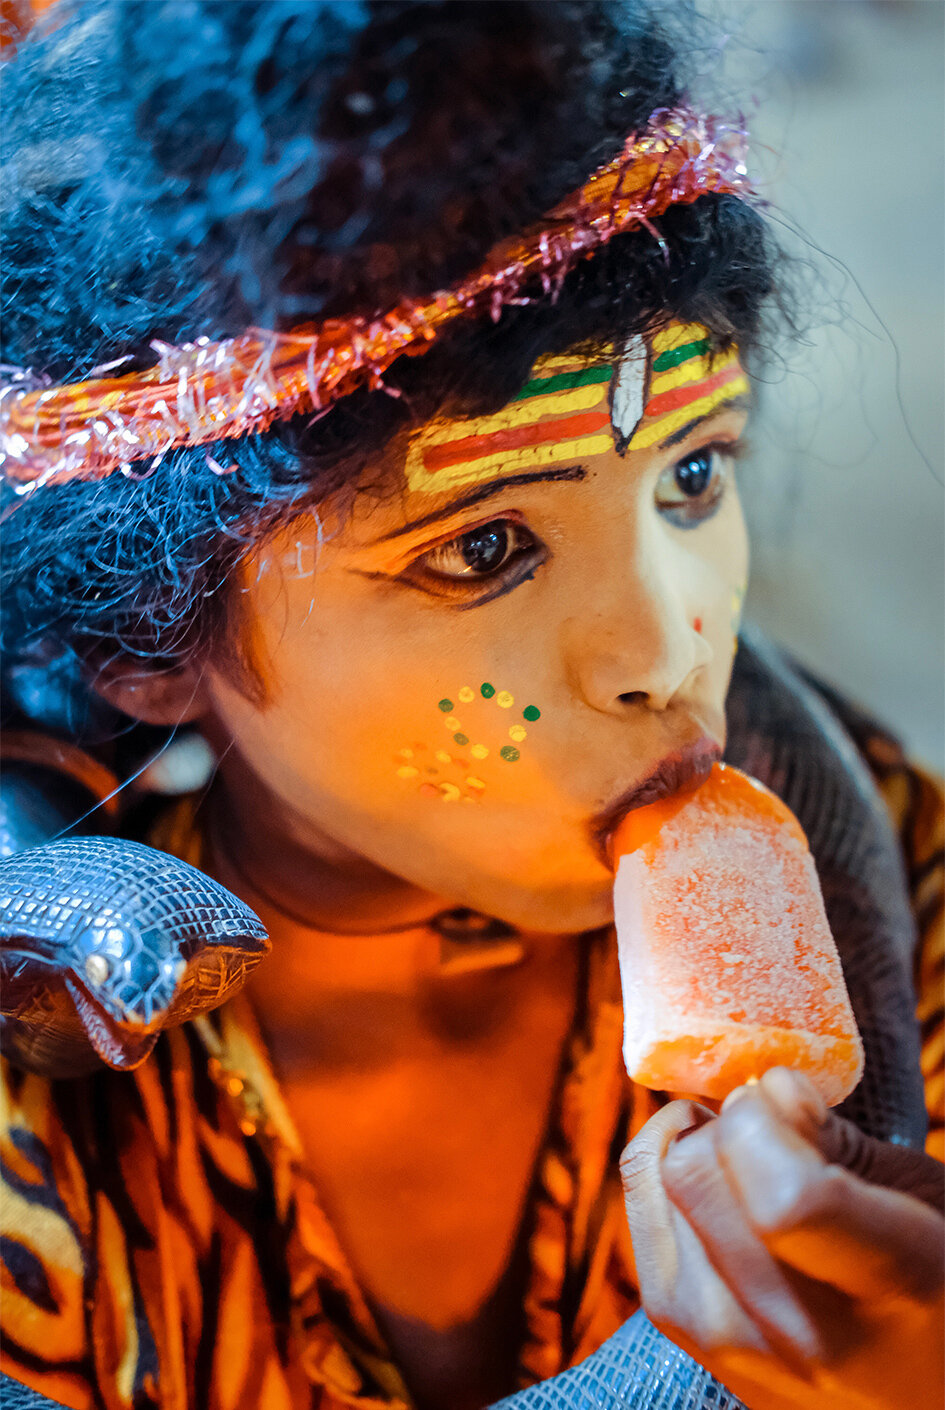 Shiva eating an ice cream